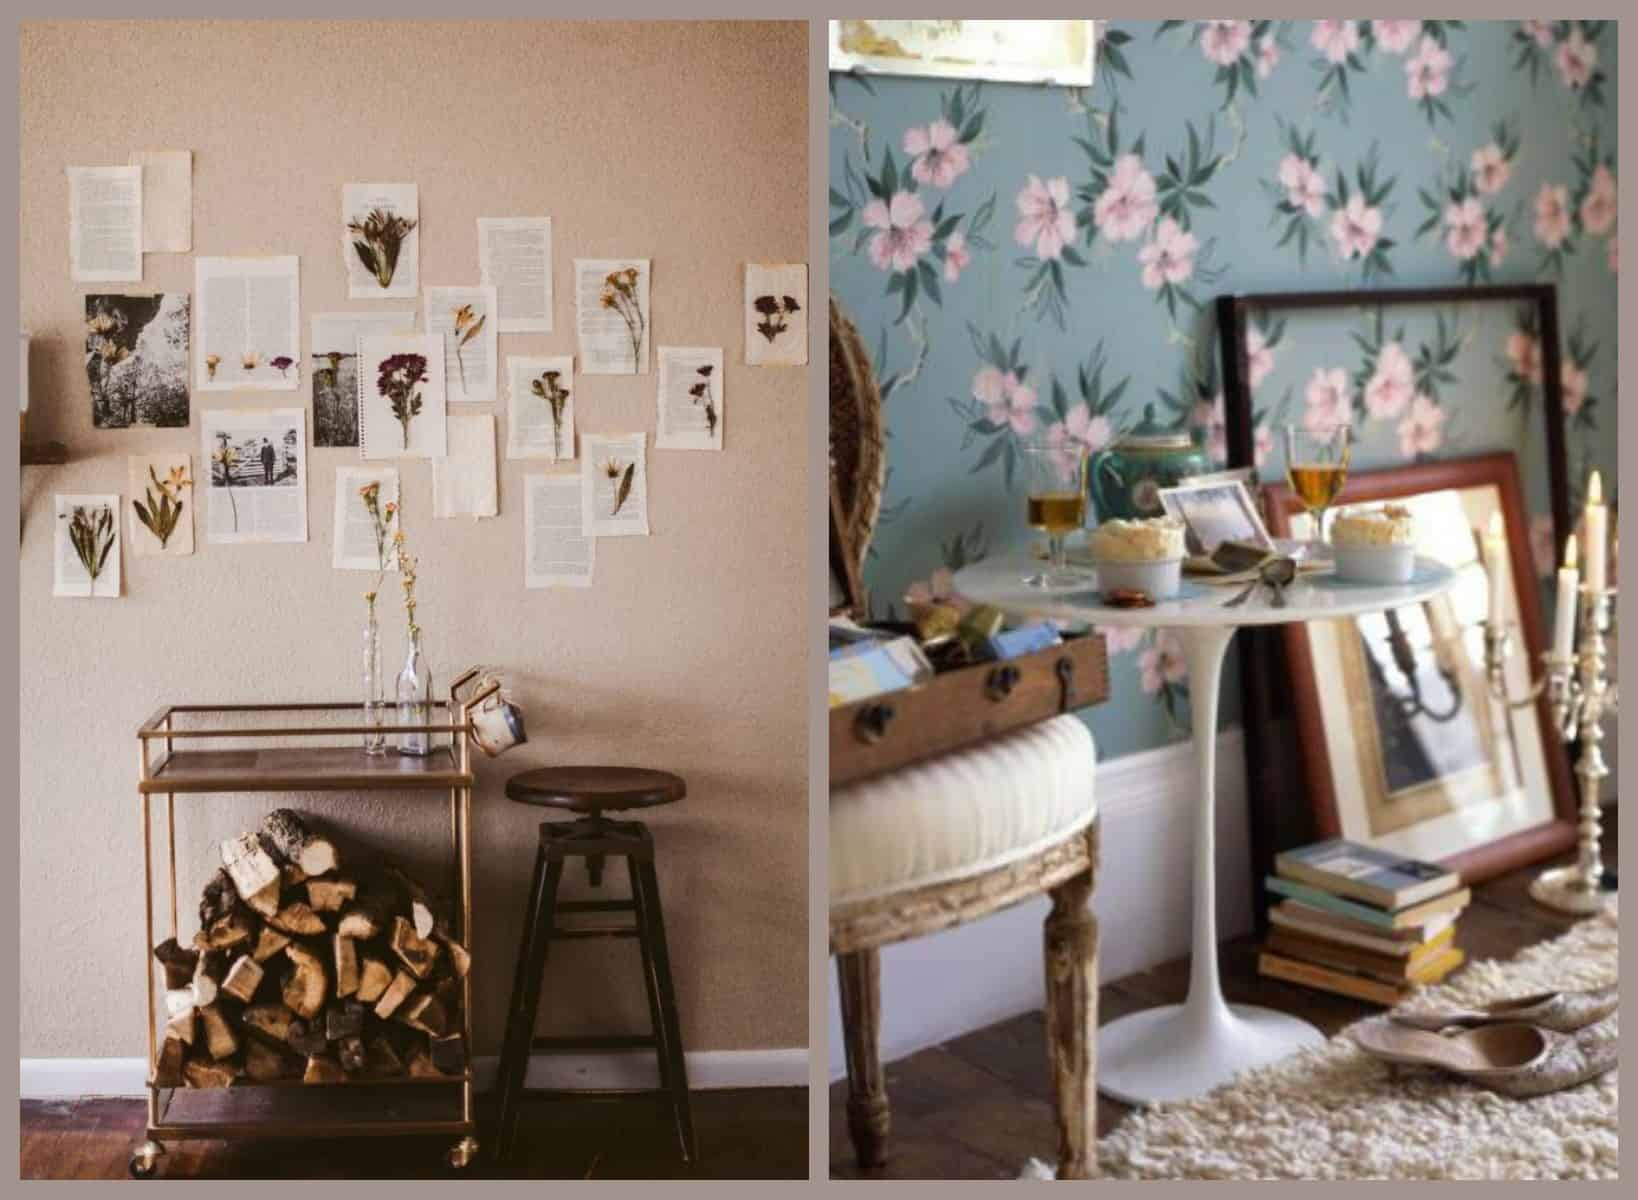 DIY : 10 idee su come decorare una parete di casa!